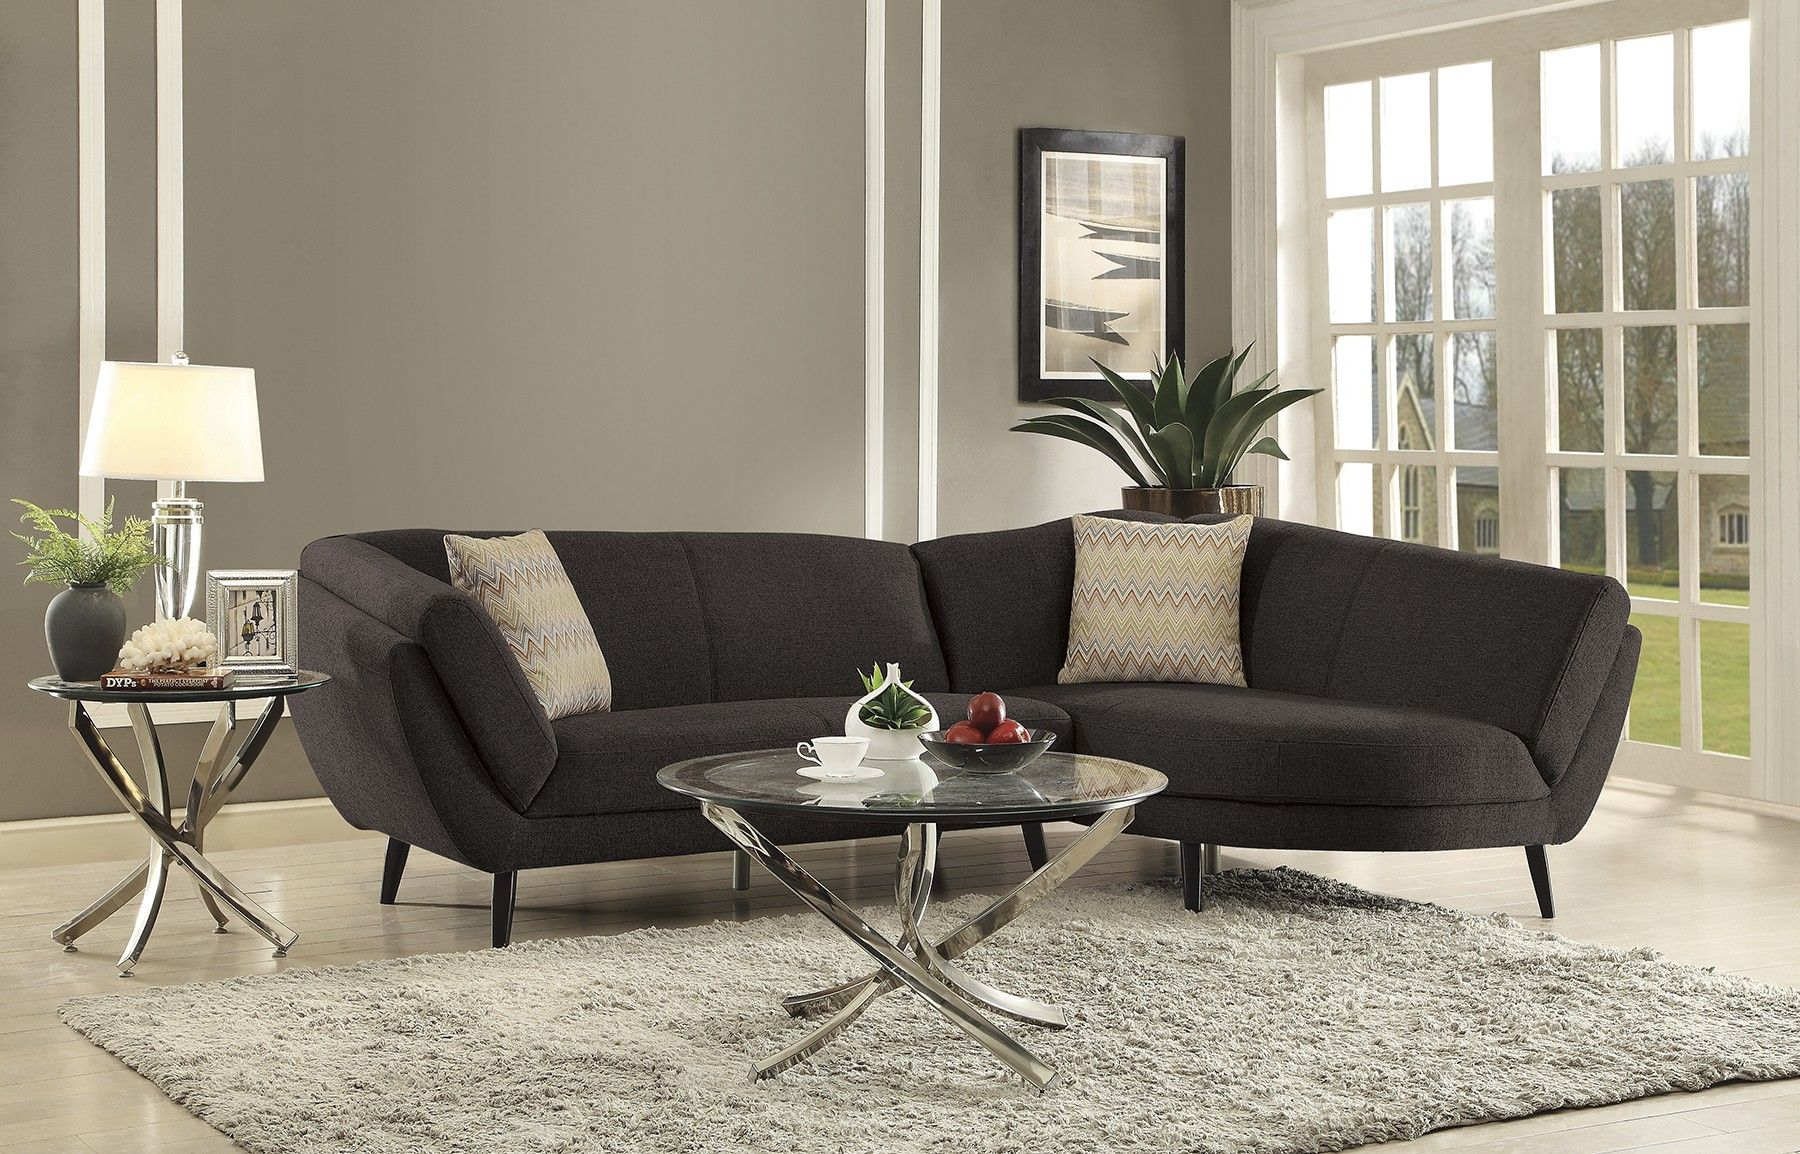 Coaster Norwood 500463 Mid Century Modern Grey Sectional Sofa Los